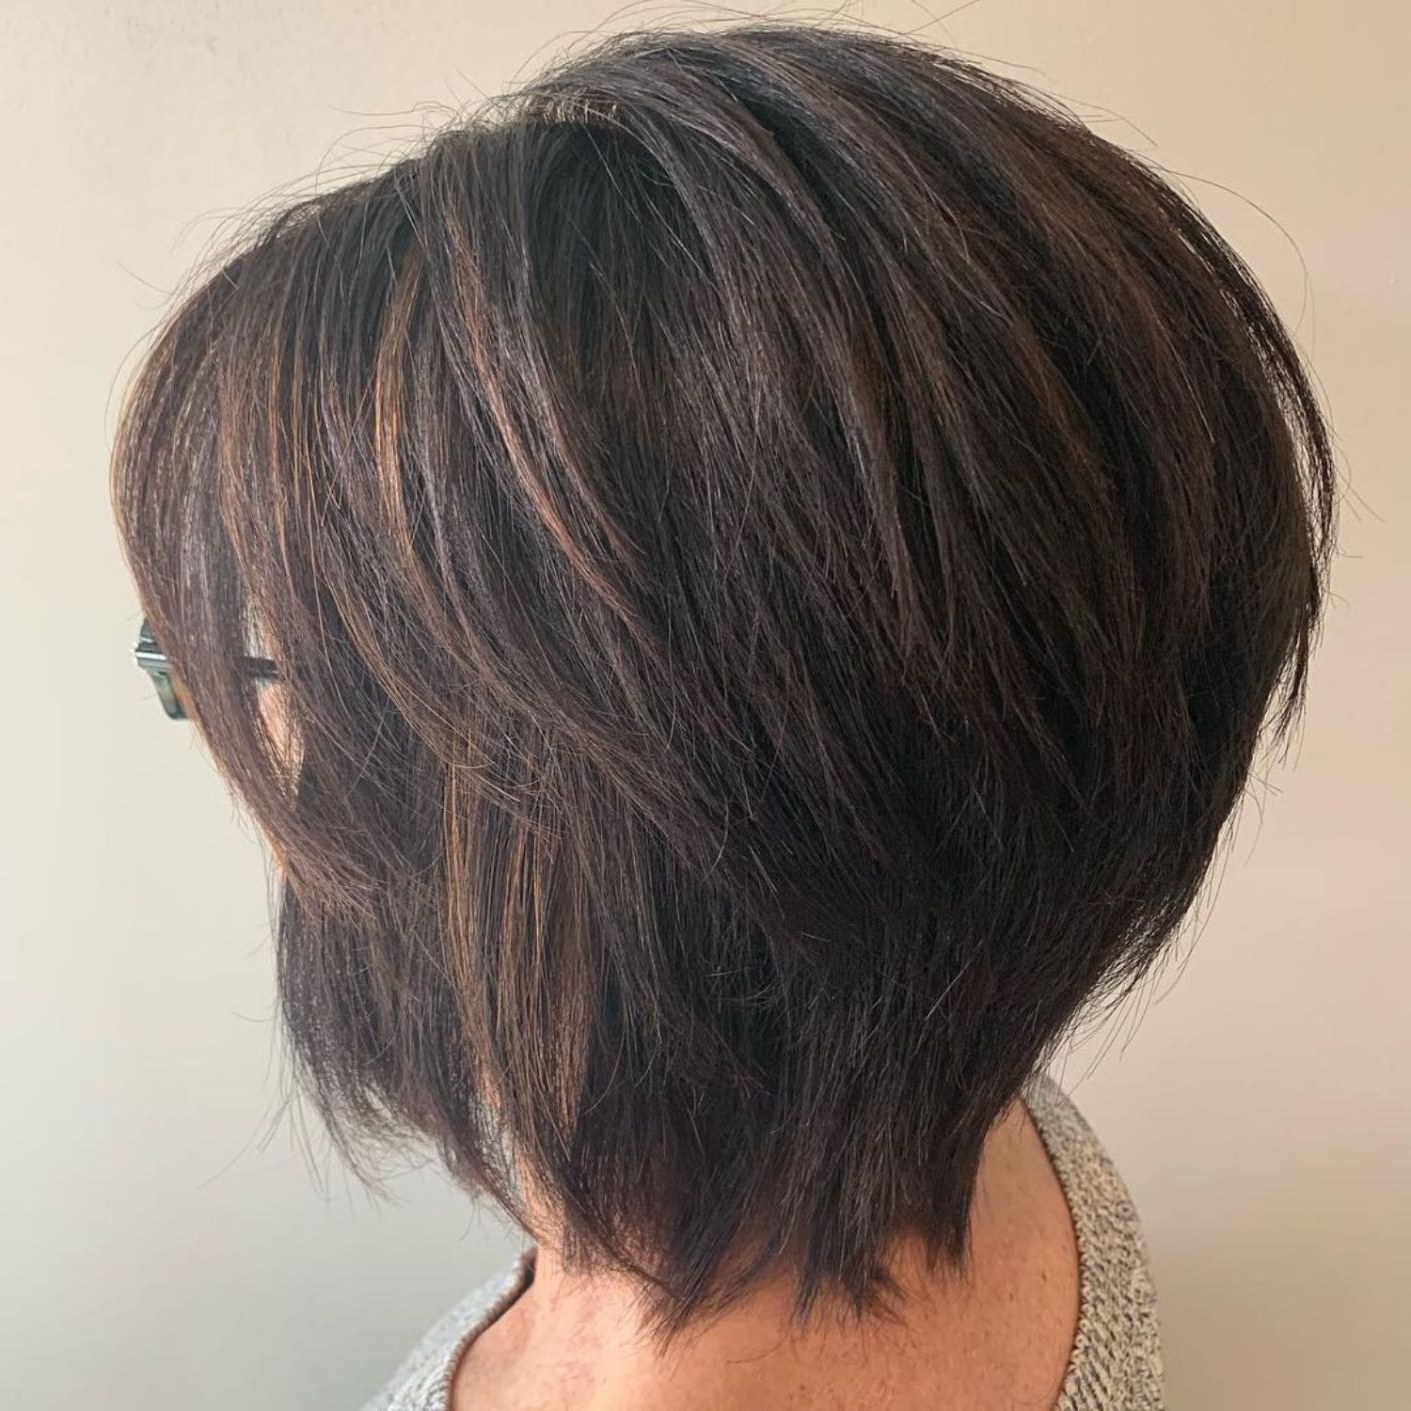 60 Short Shag Hairstyles That You Simply Can't Miss In 2019 With Most Recent Razored Shag Haircuts For Long Thick Hair (View 8 of 20)